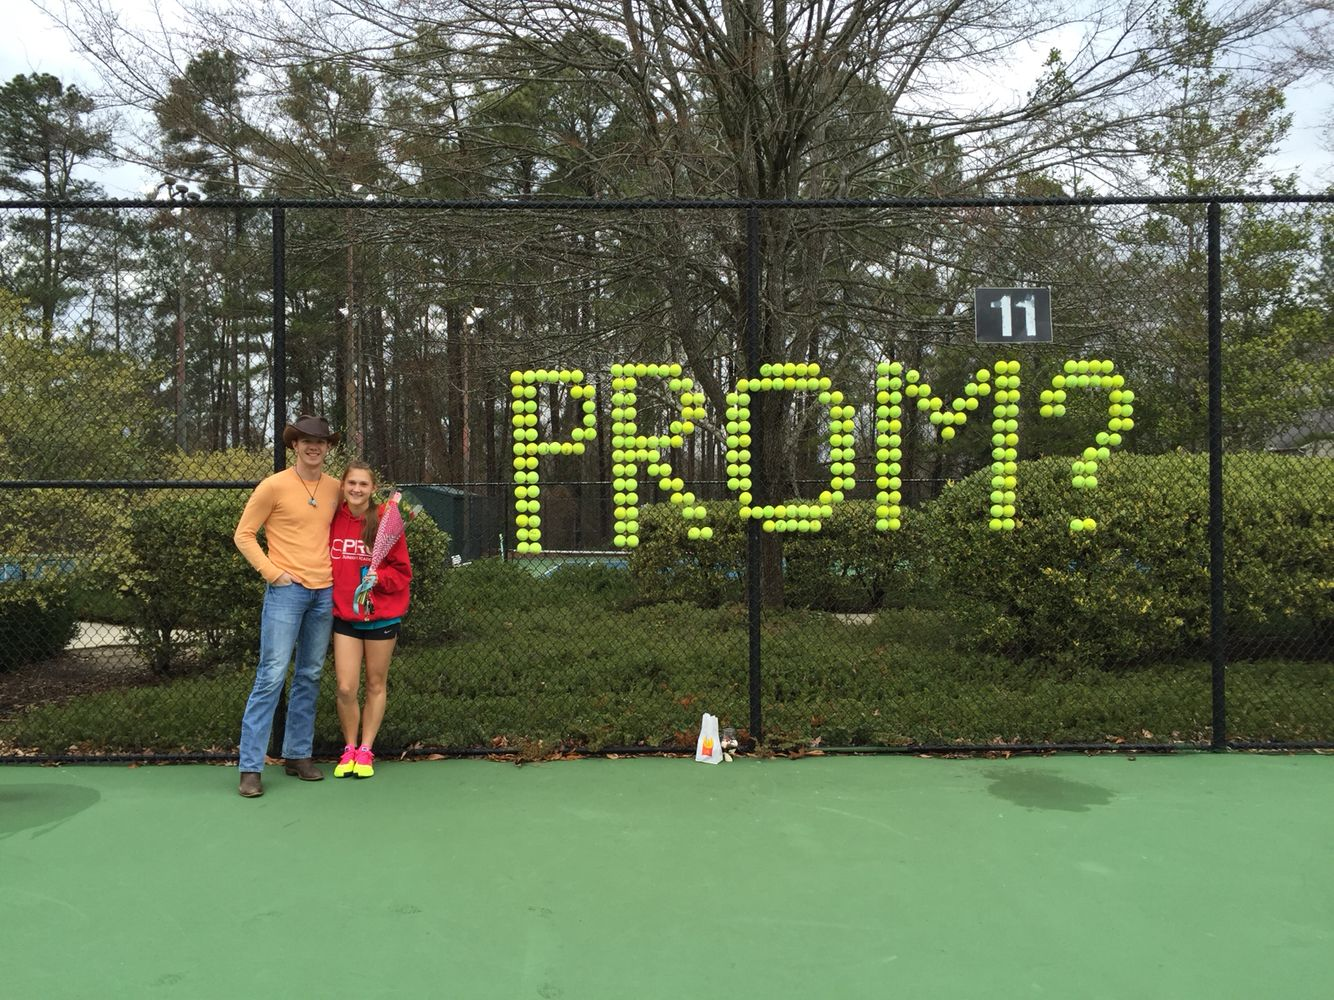 Tennis Promposal Homecoming Proposal Asking To Prom Promposal